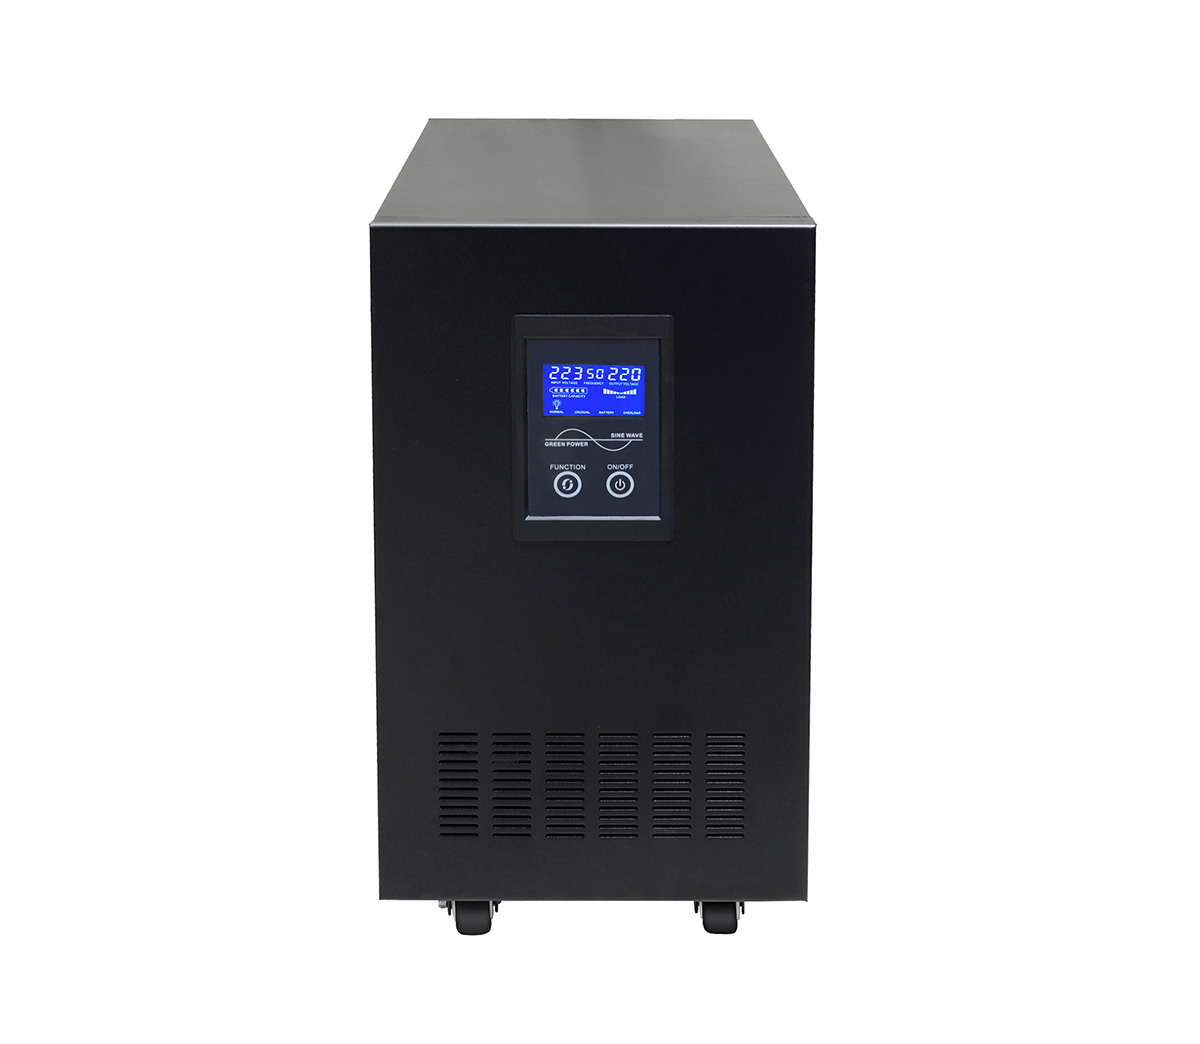 NB Low frequency inverter